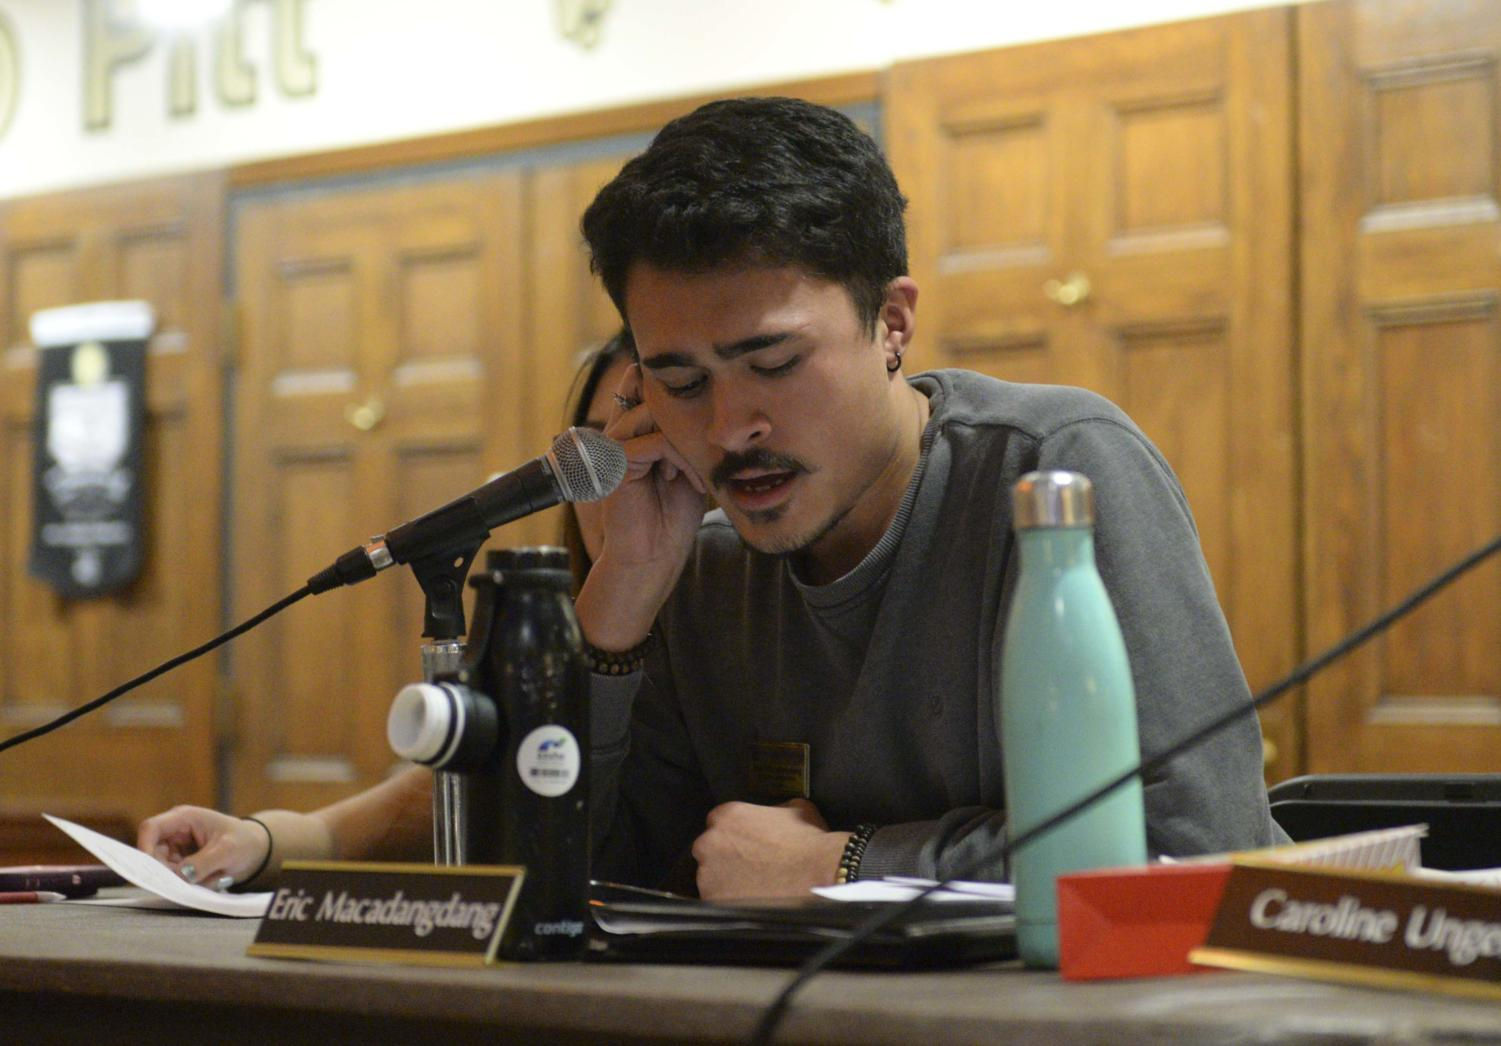 A resolution proposed by board member Eric Macadangdang calling on support for University labor and rights to organize without unlawful intrusion passed at last night's meeting. It comes about a month after Pitt filed an exception to a ruling proposed by the Pennsylvania Labor Relations Board on Sept. 18, halting its orders.